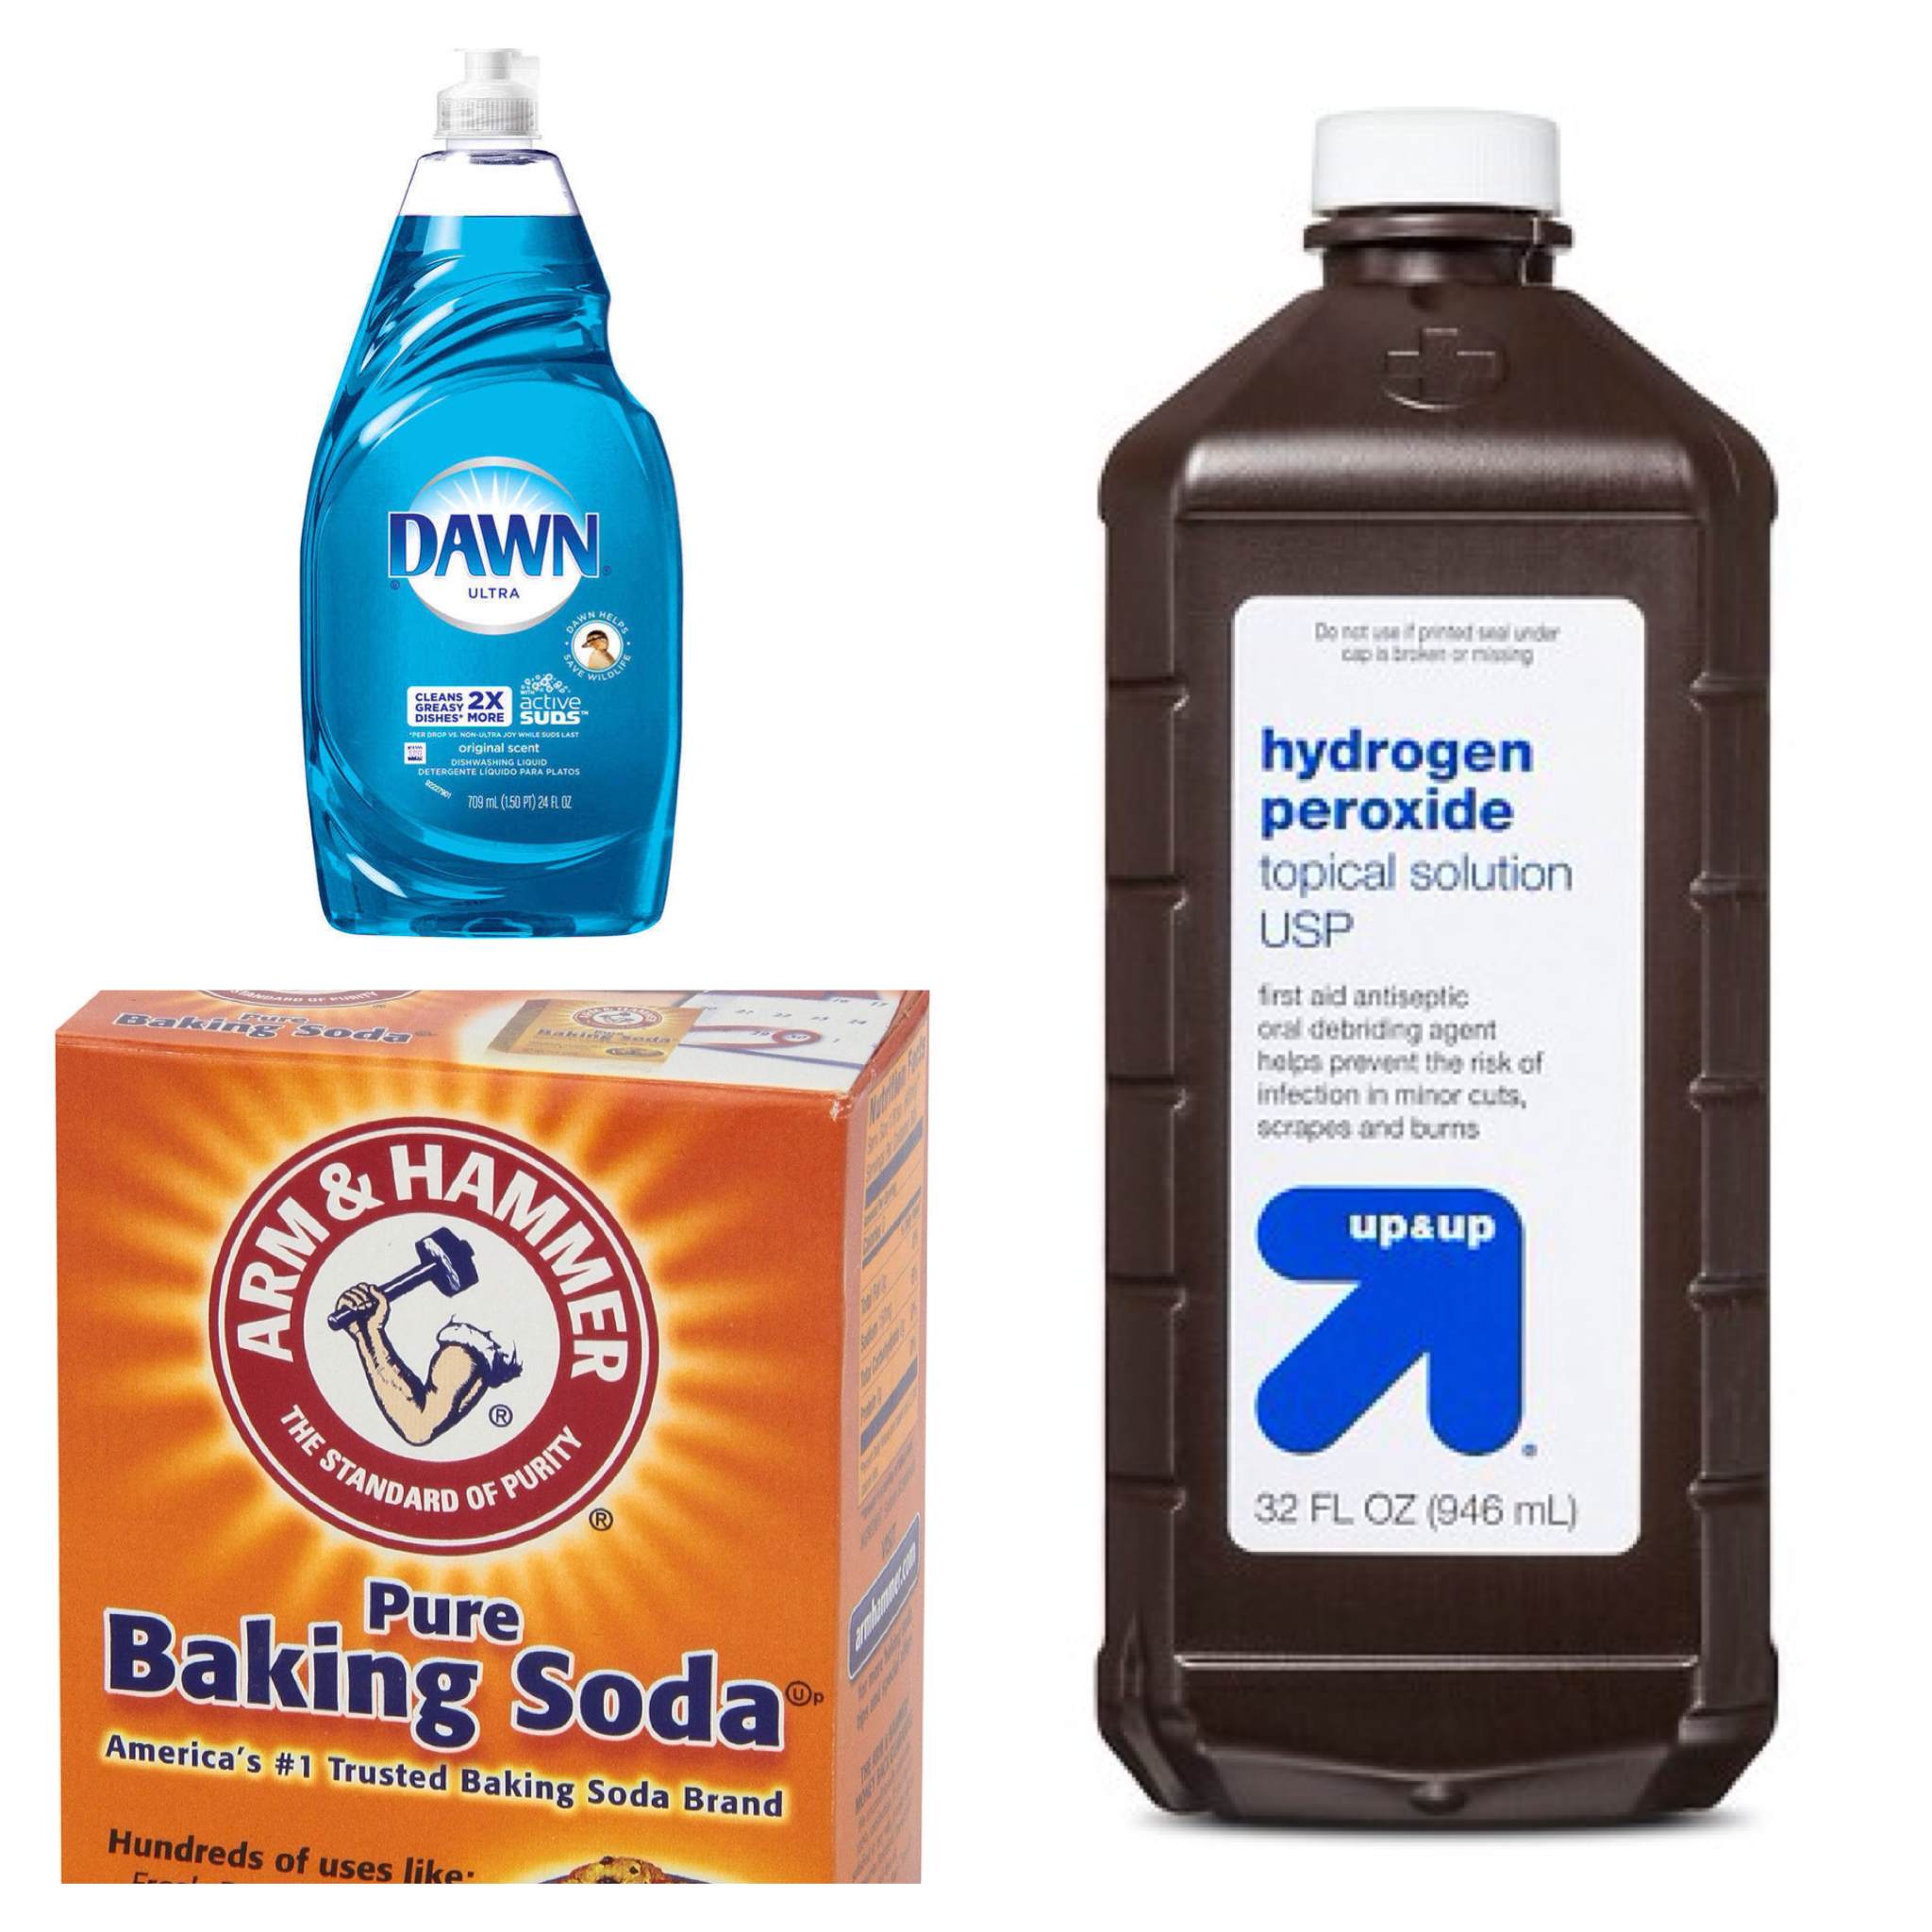 Mix 1 Tsp Dawn Liquid Dish Detergent 3 4 T Hydrogen Peroxide 2 3 T Baking Soda Apply To Stain And Scrub With Dish Detergent Soda Brands Dish Soap Bottle